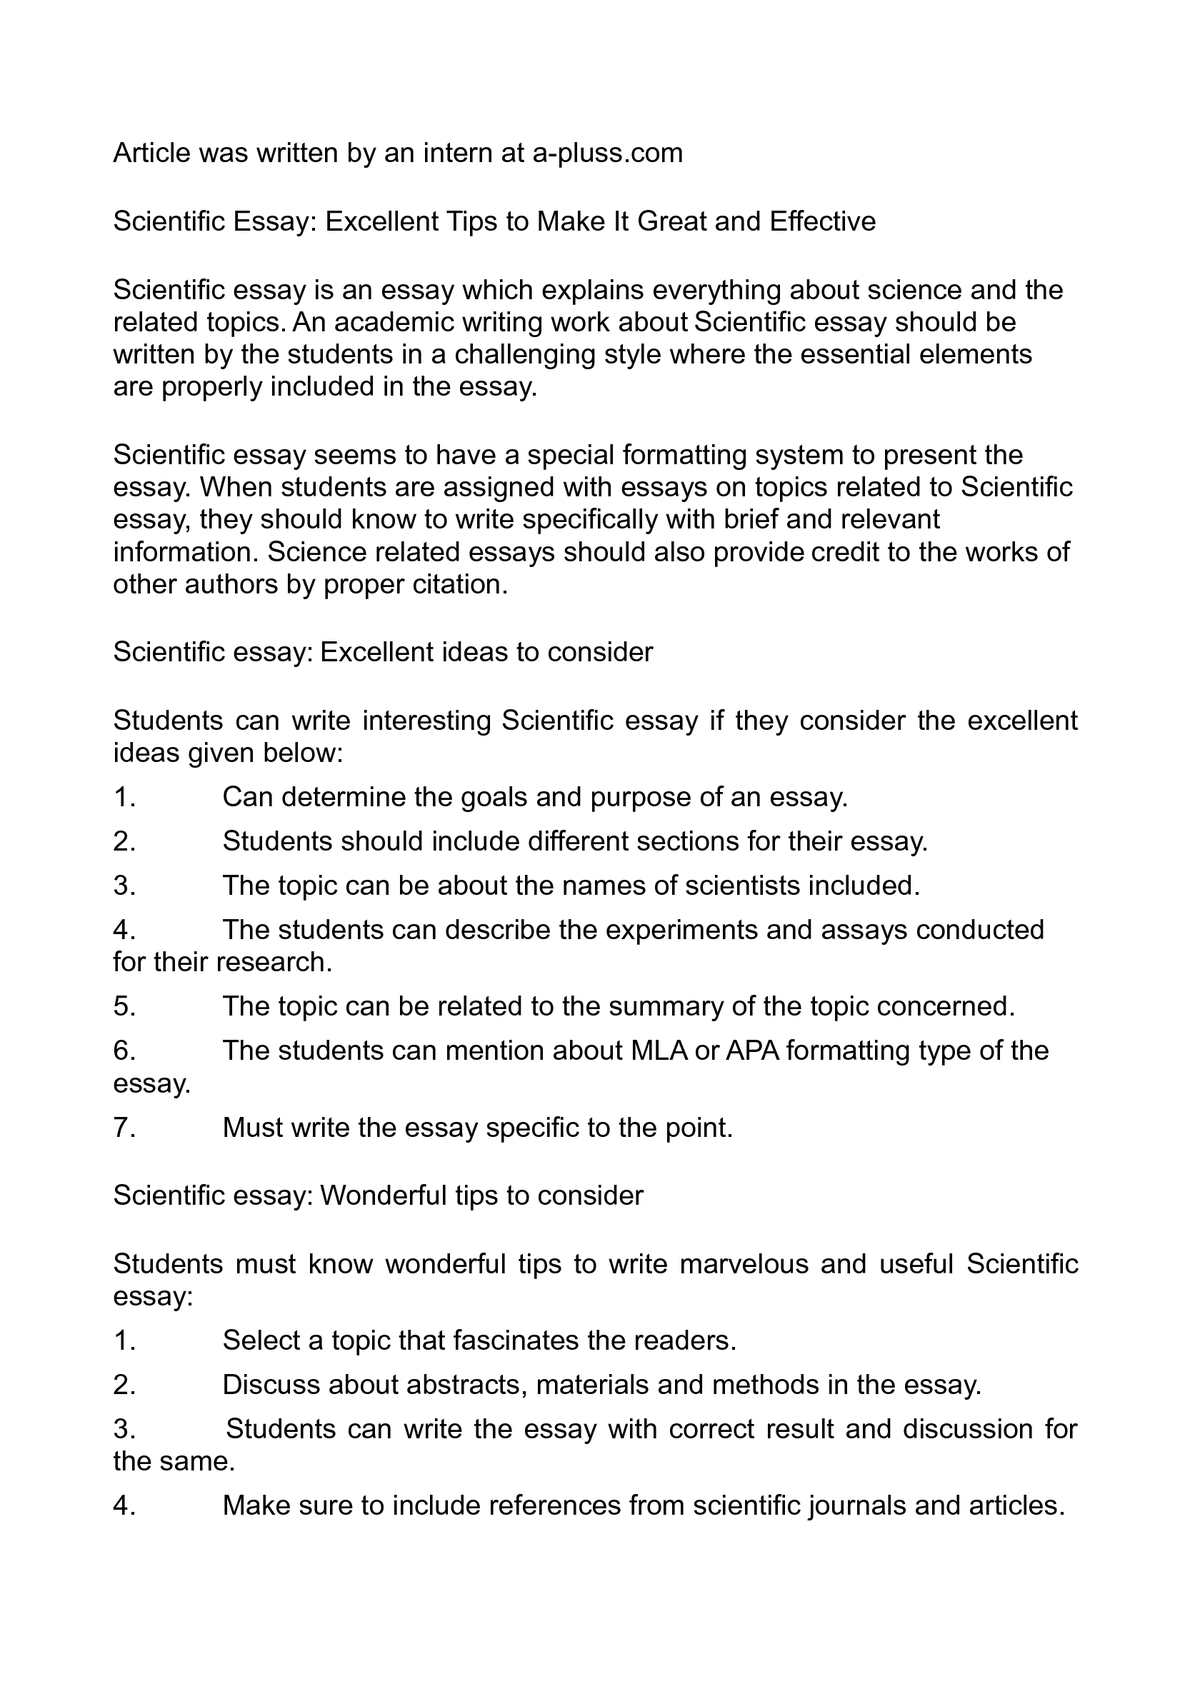 calamo   scientific essay excellent tips to make it great